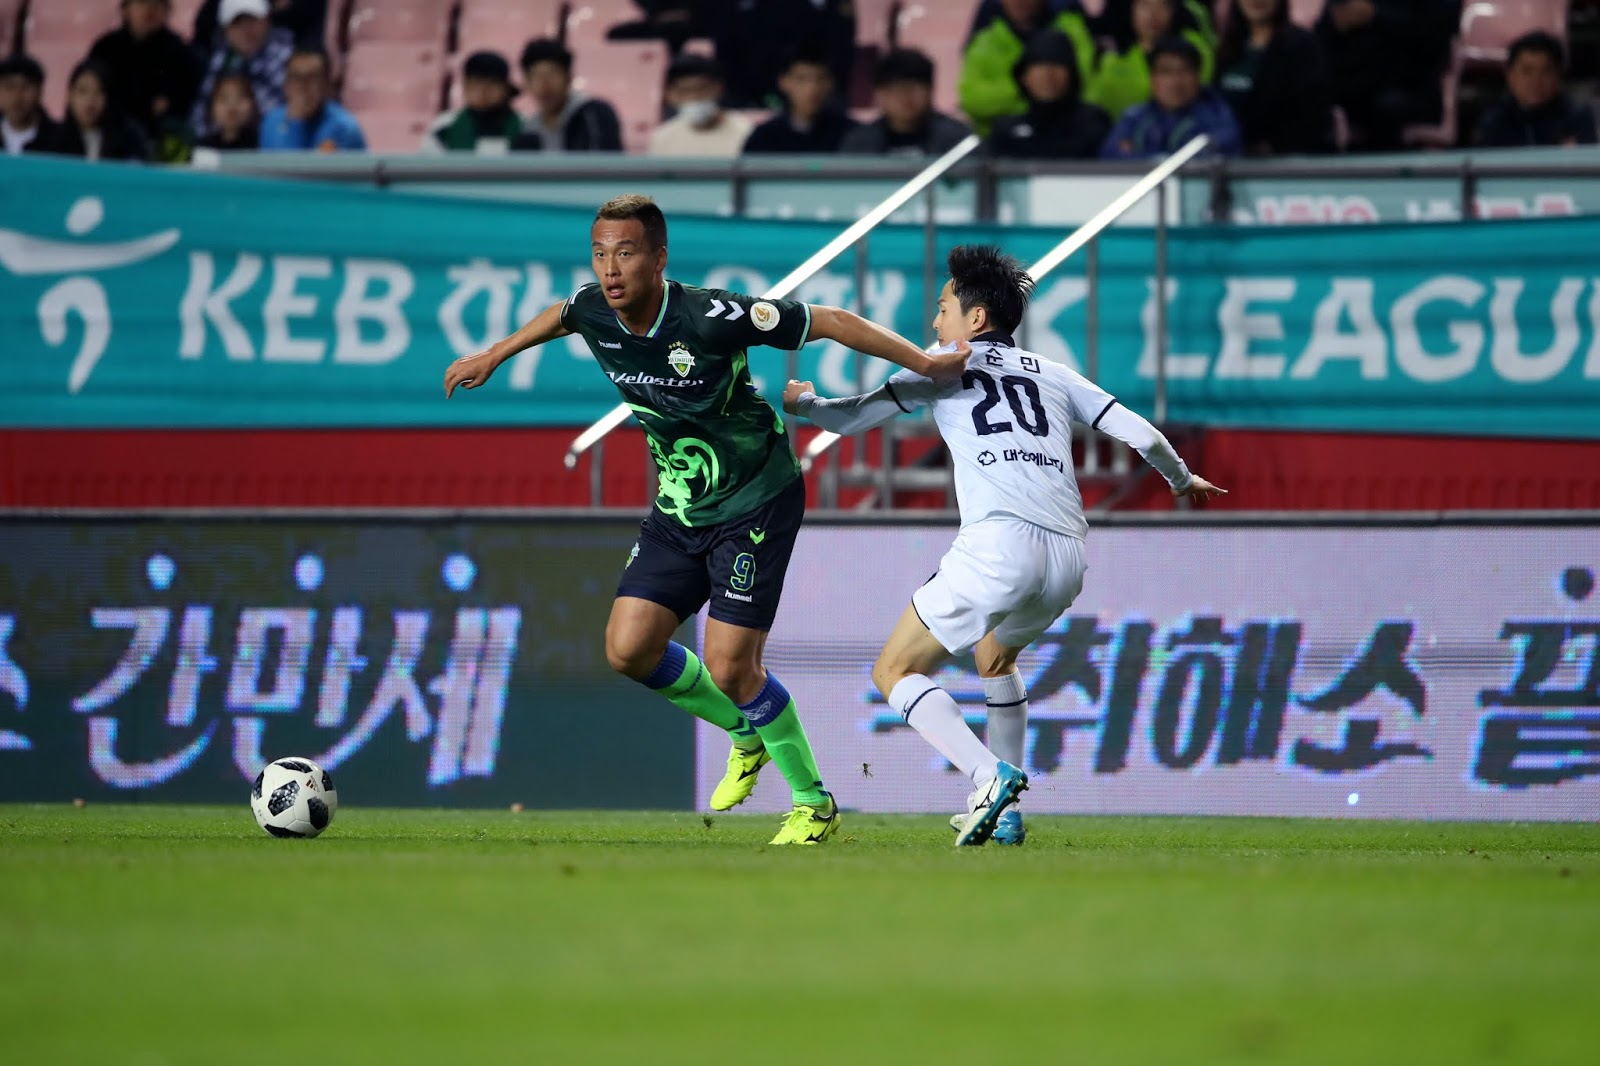 K League 1 Preview: Jeonbuk Hyundai Motors vs Daegu FC